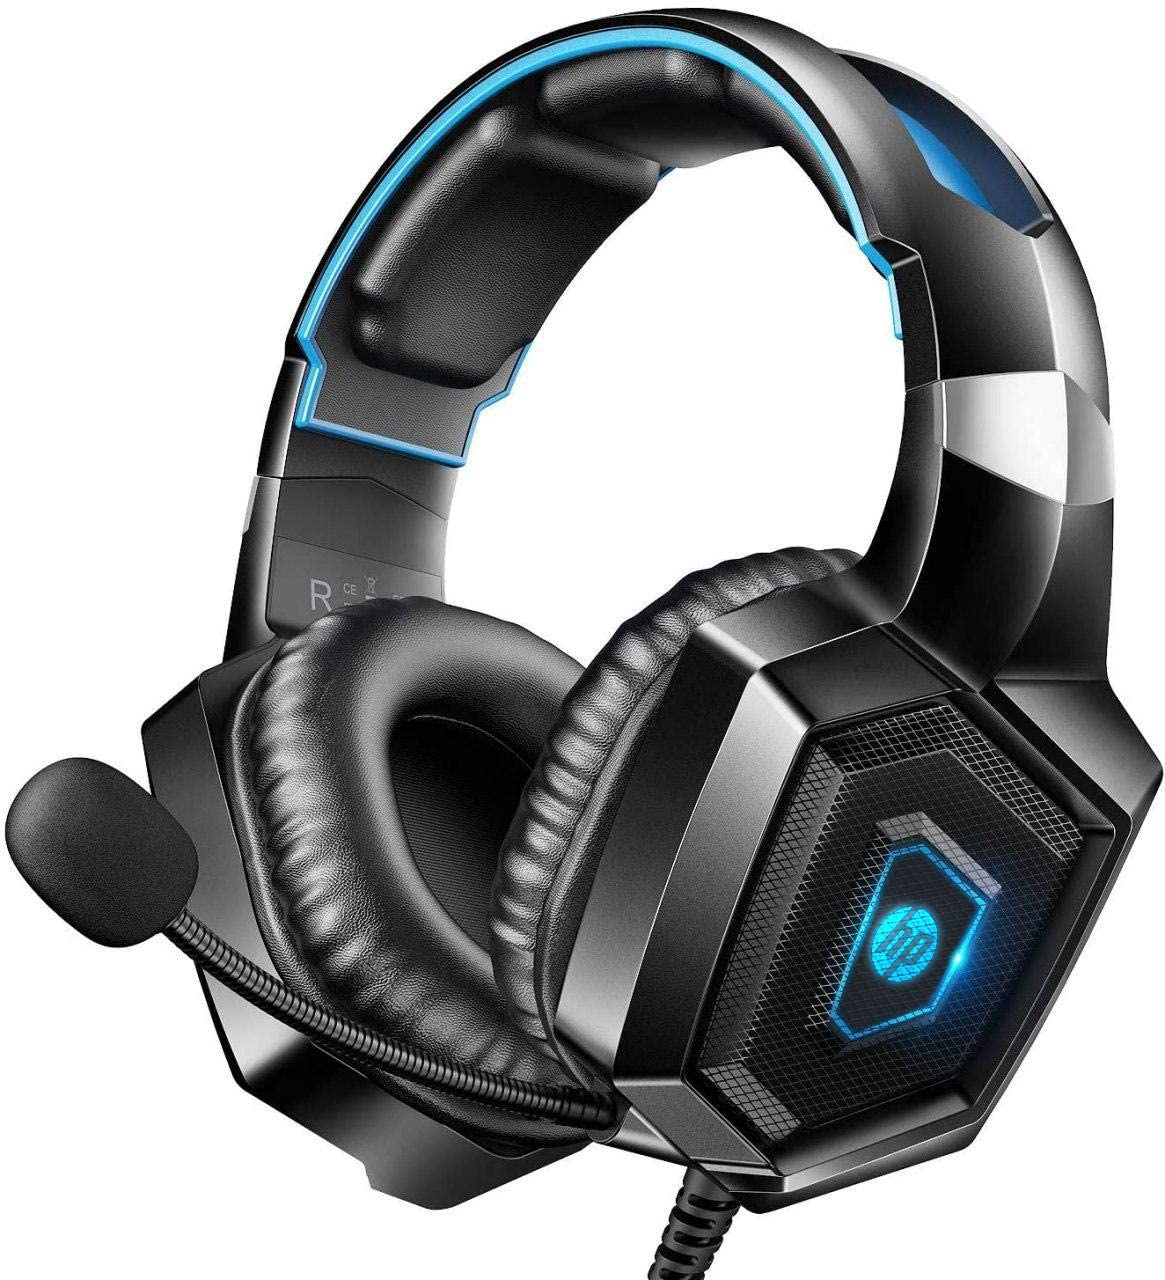 HP Stereo Gaming Headset PS4 Over Ear Headphones with Microphone for Xbox One Nintendo Switch PC PS3 Mac Laptop Gamer Headset with Noise Cancelling Mic Surround Sound Comfortable Design and LED Lights